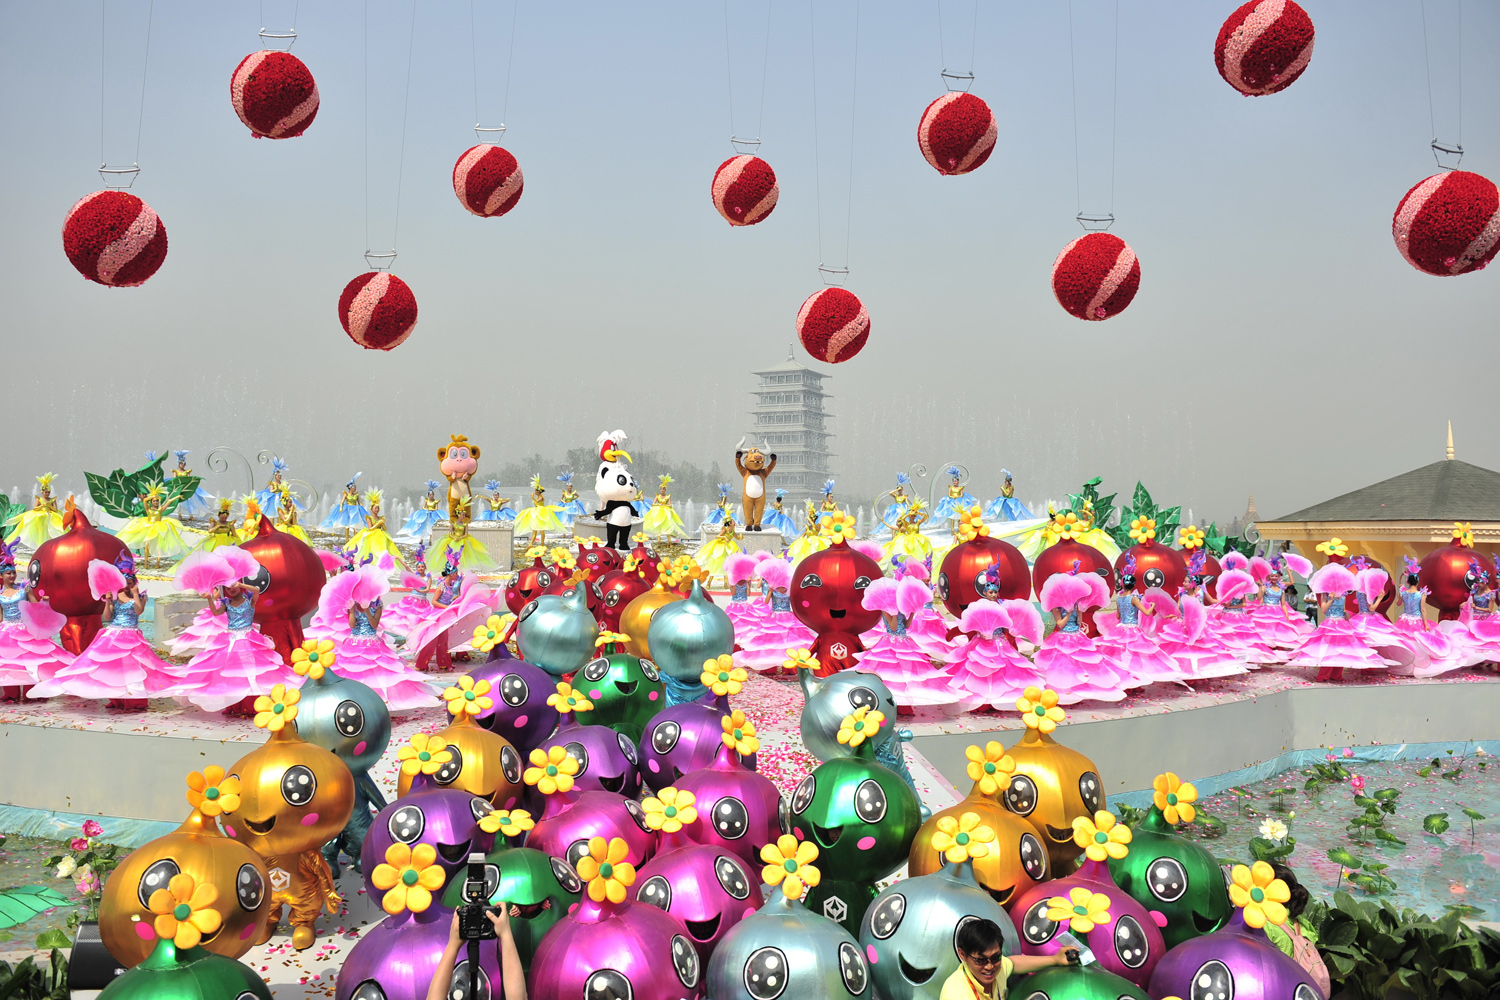 April 28, 2011. Chinese artists perform on stage during the opening ceremony of the International Horticultural Exposition 2011 in Xi'an, Shaanxi Province of China.